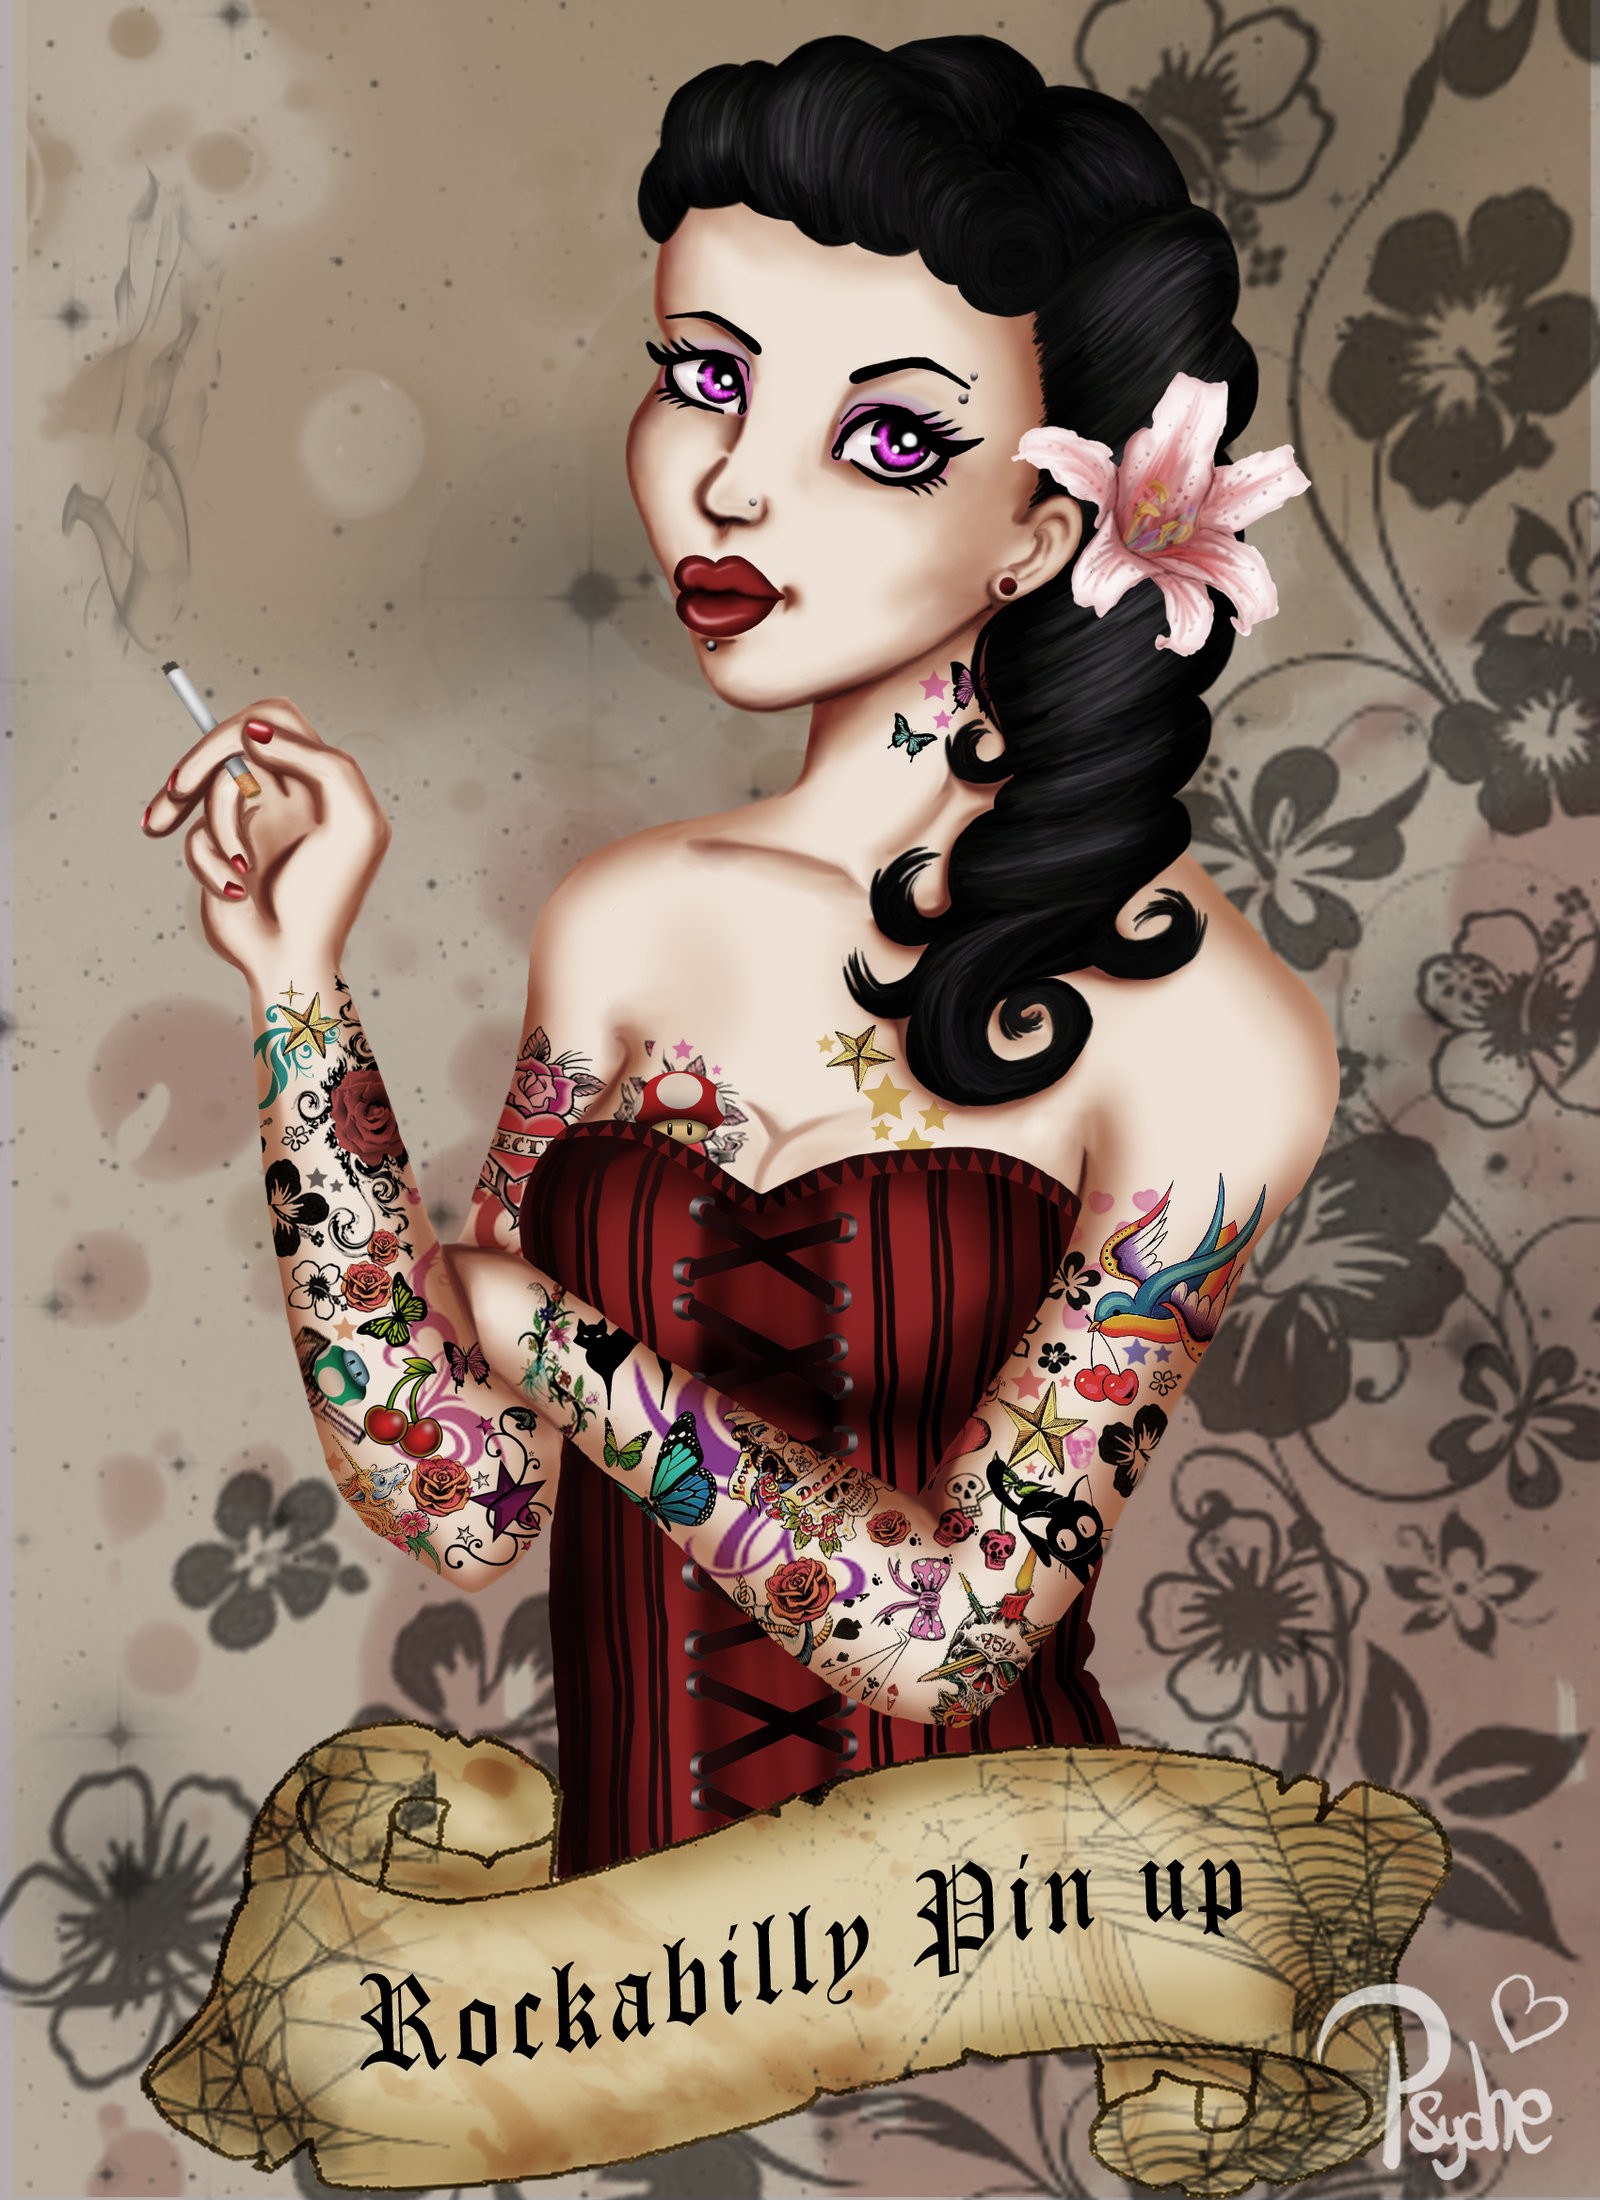 Res: 1600x2200, ... Rockabilly pin up 2 by Lady-Psyche